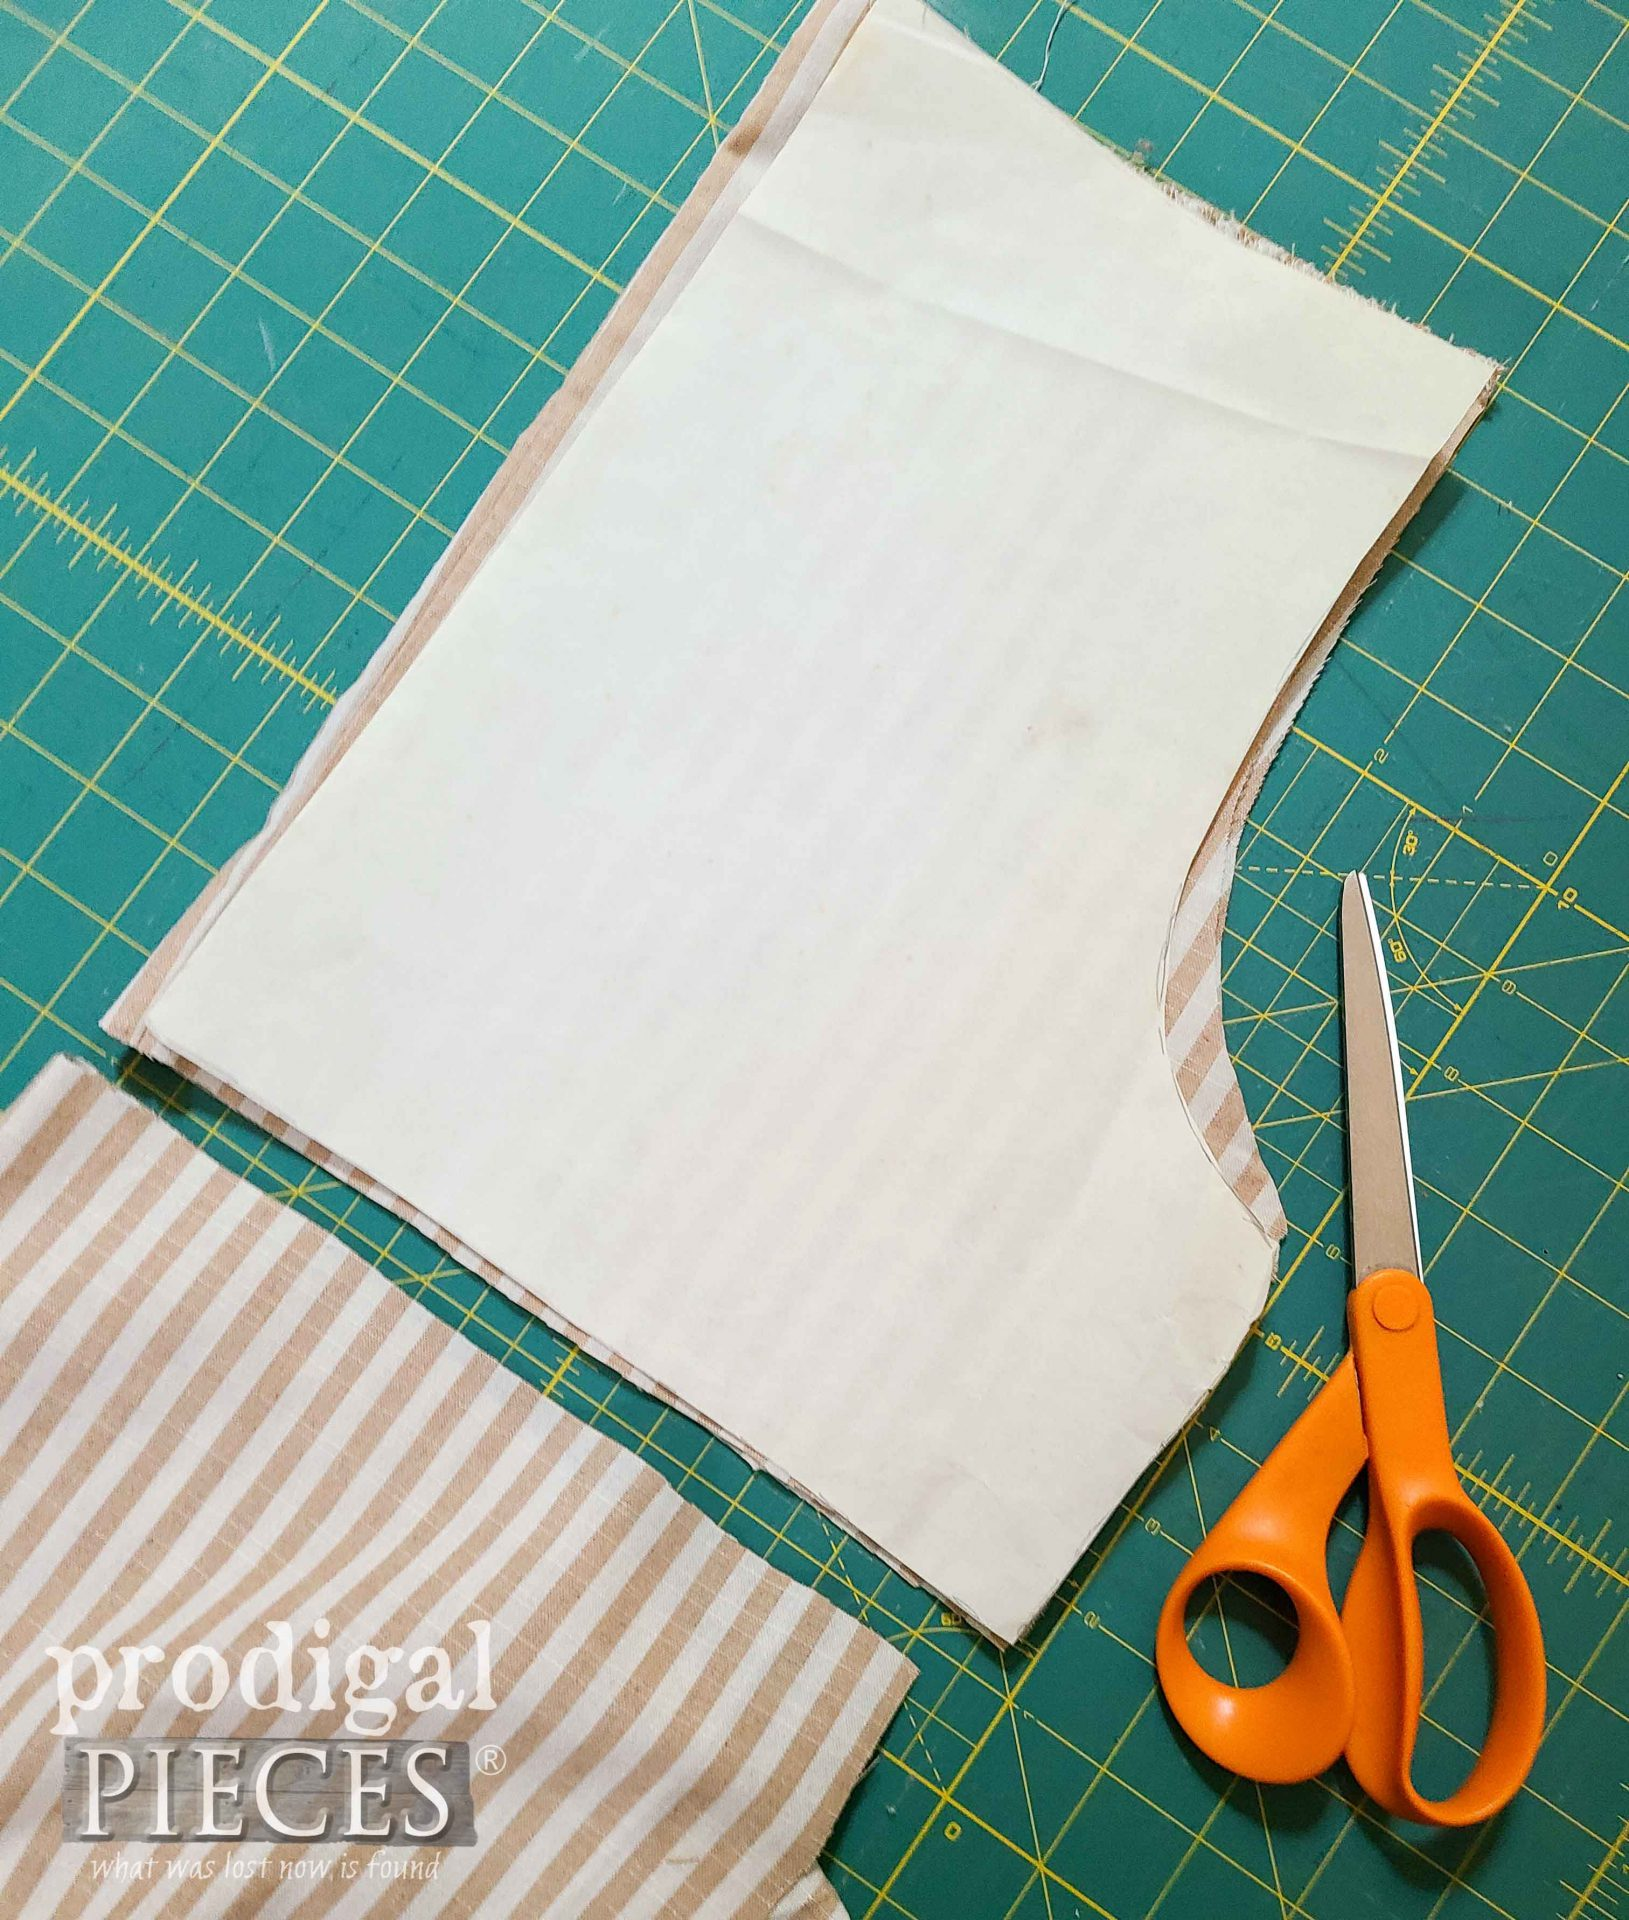 Refashioned Pants Cut into Sleeves for Ladies' Smocked Blouse | prodigalpieces.com